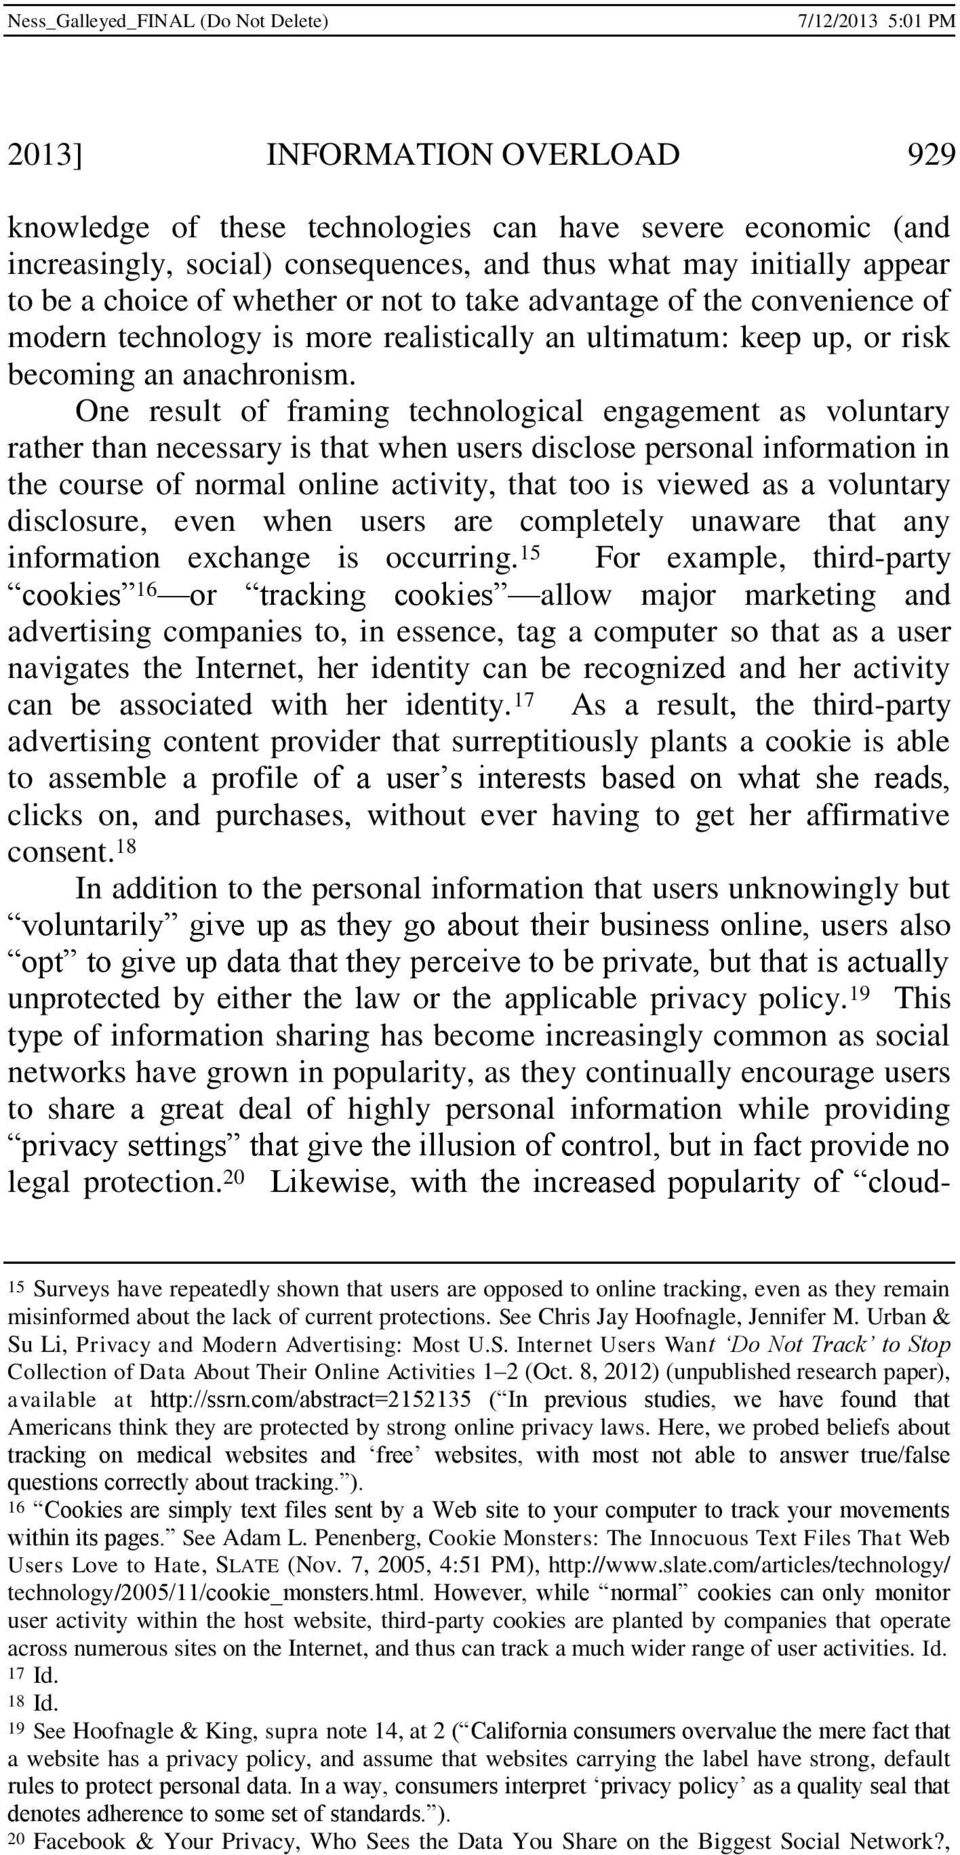 One result of framing technological engagement as voluntary rather than necessary is that when users disclose personal information in the course of normal online activity, that too is viewed as a